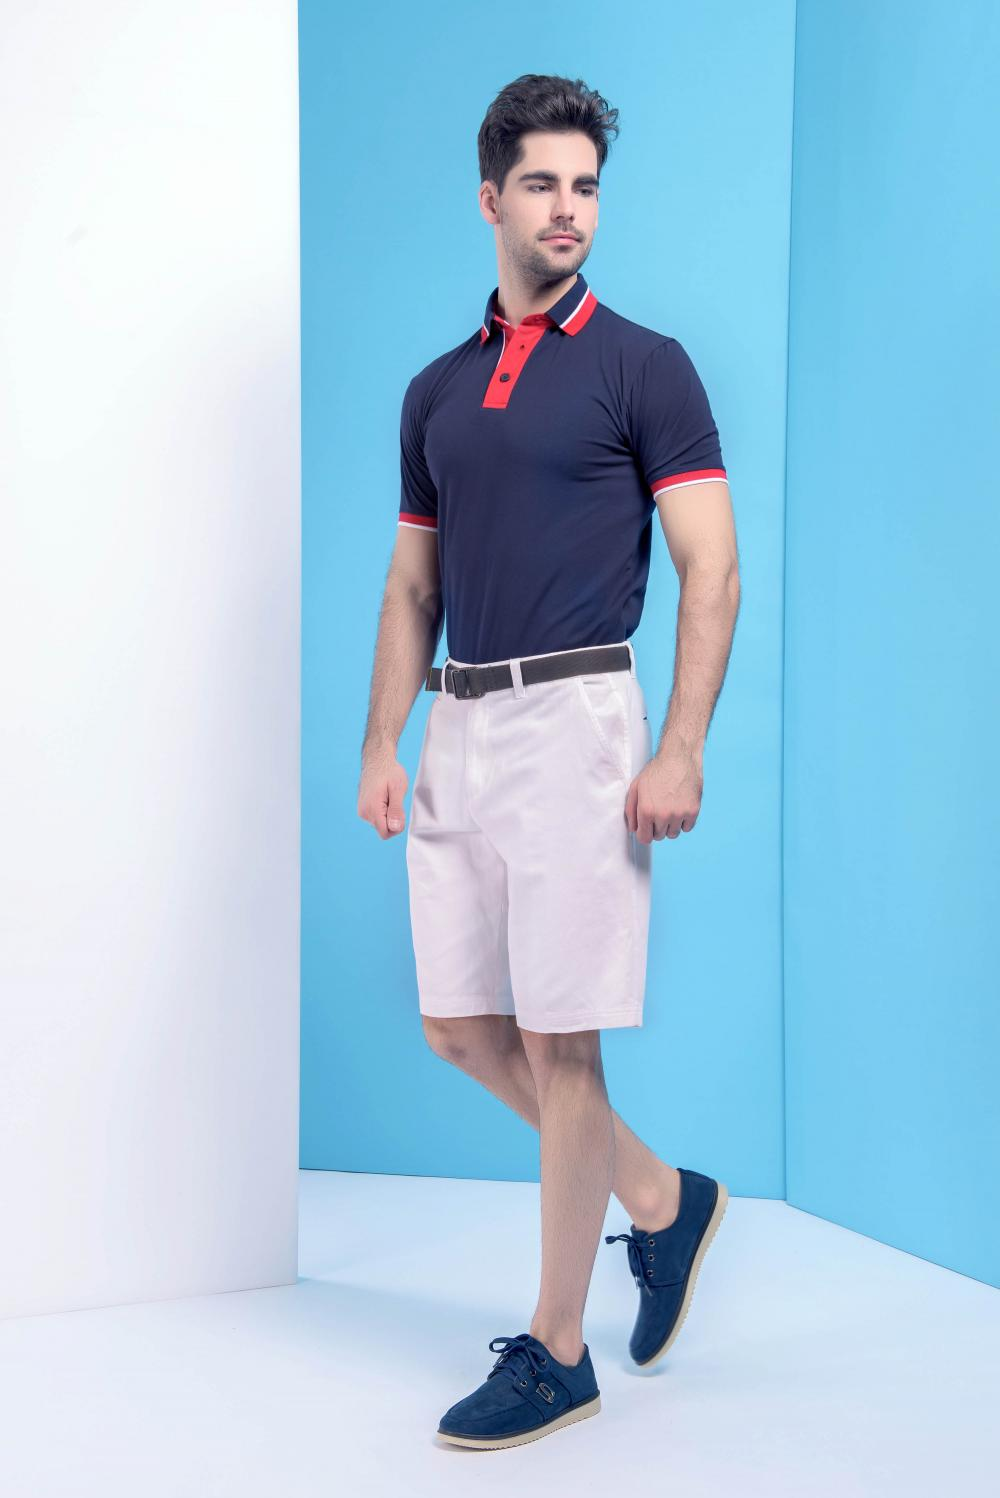 Men's business shorts